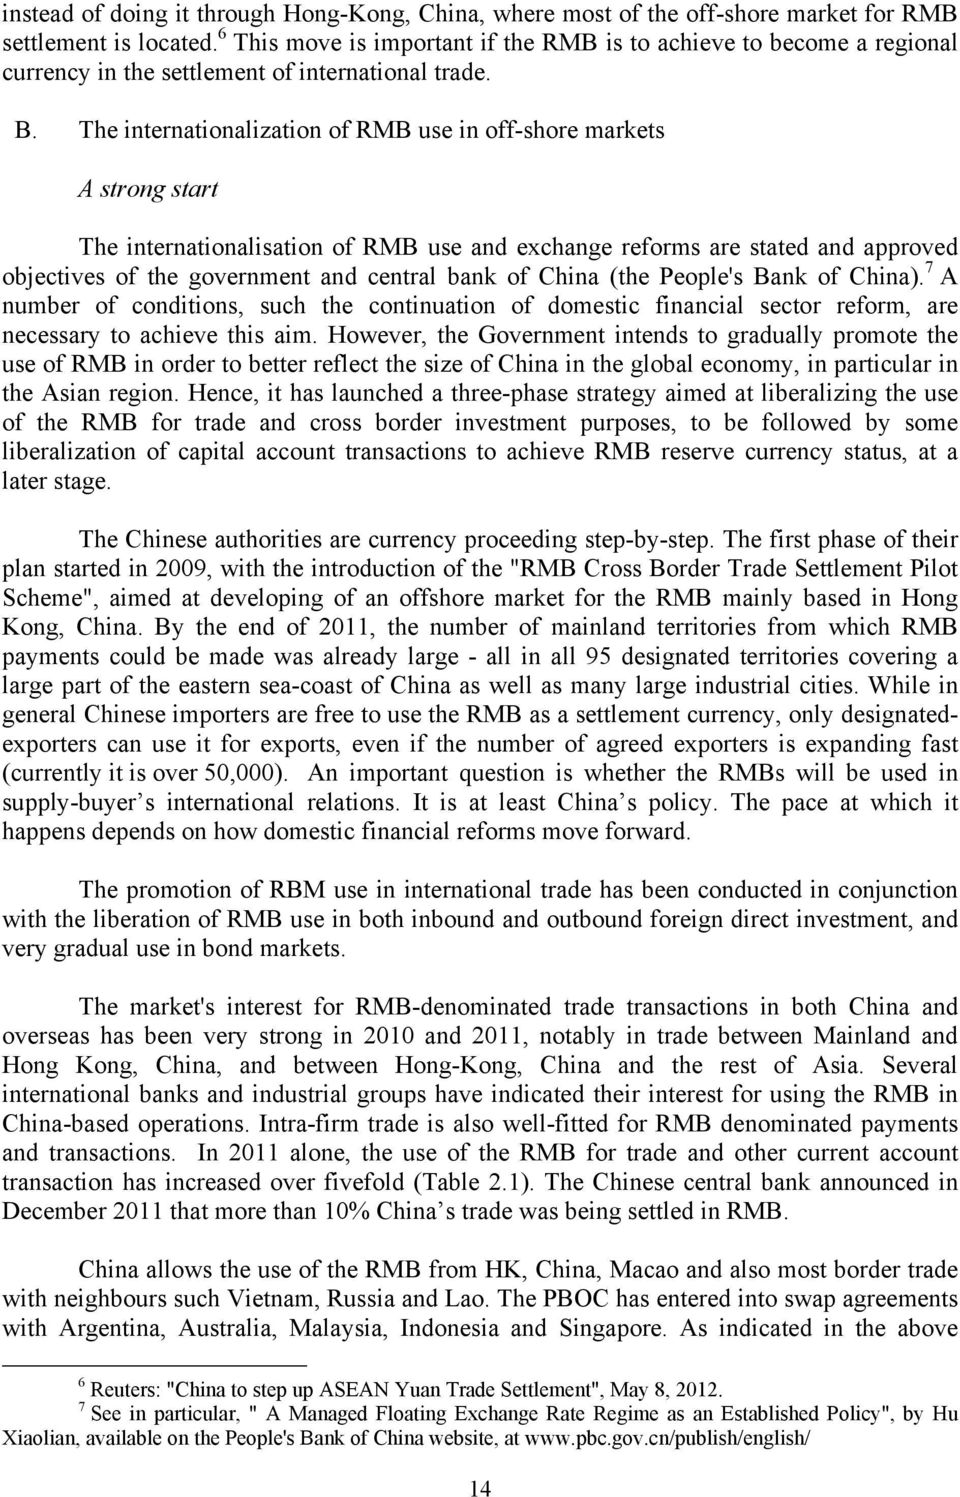 The internationalization of RMB use in off-shore markets A strong start The internationalisation of RMB use and exchange reforms are stated and approved objectives of the government and central bank